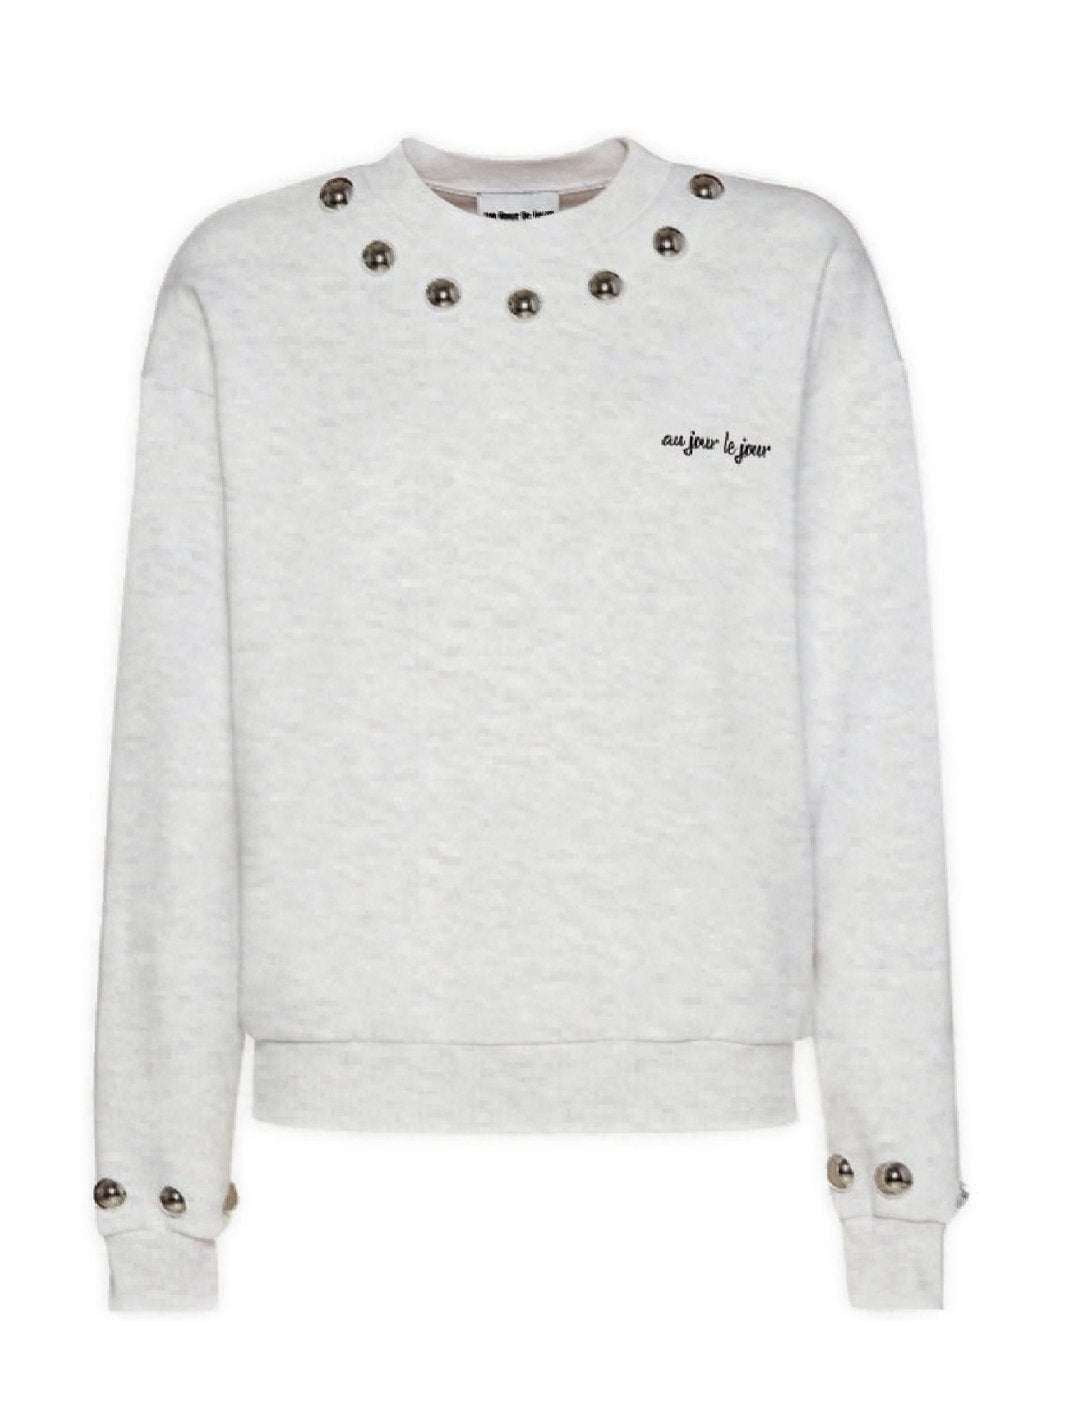 Lussemburgo Cotton Sweatshirt - The Bobby Boga